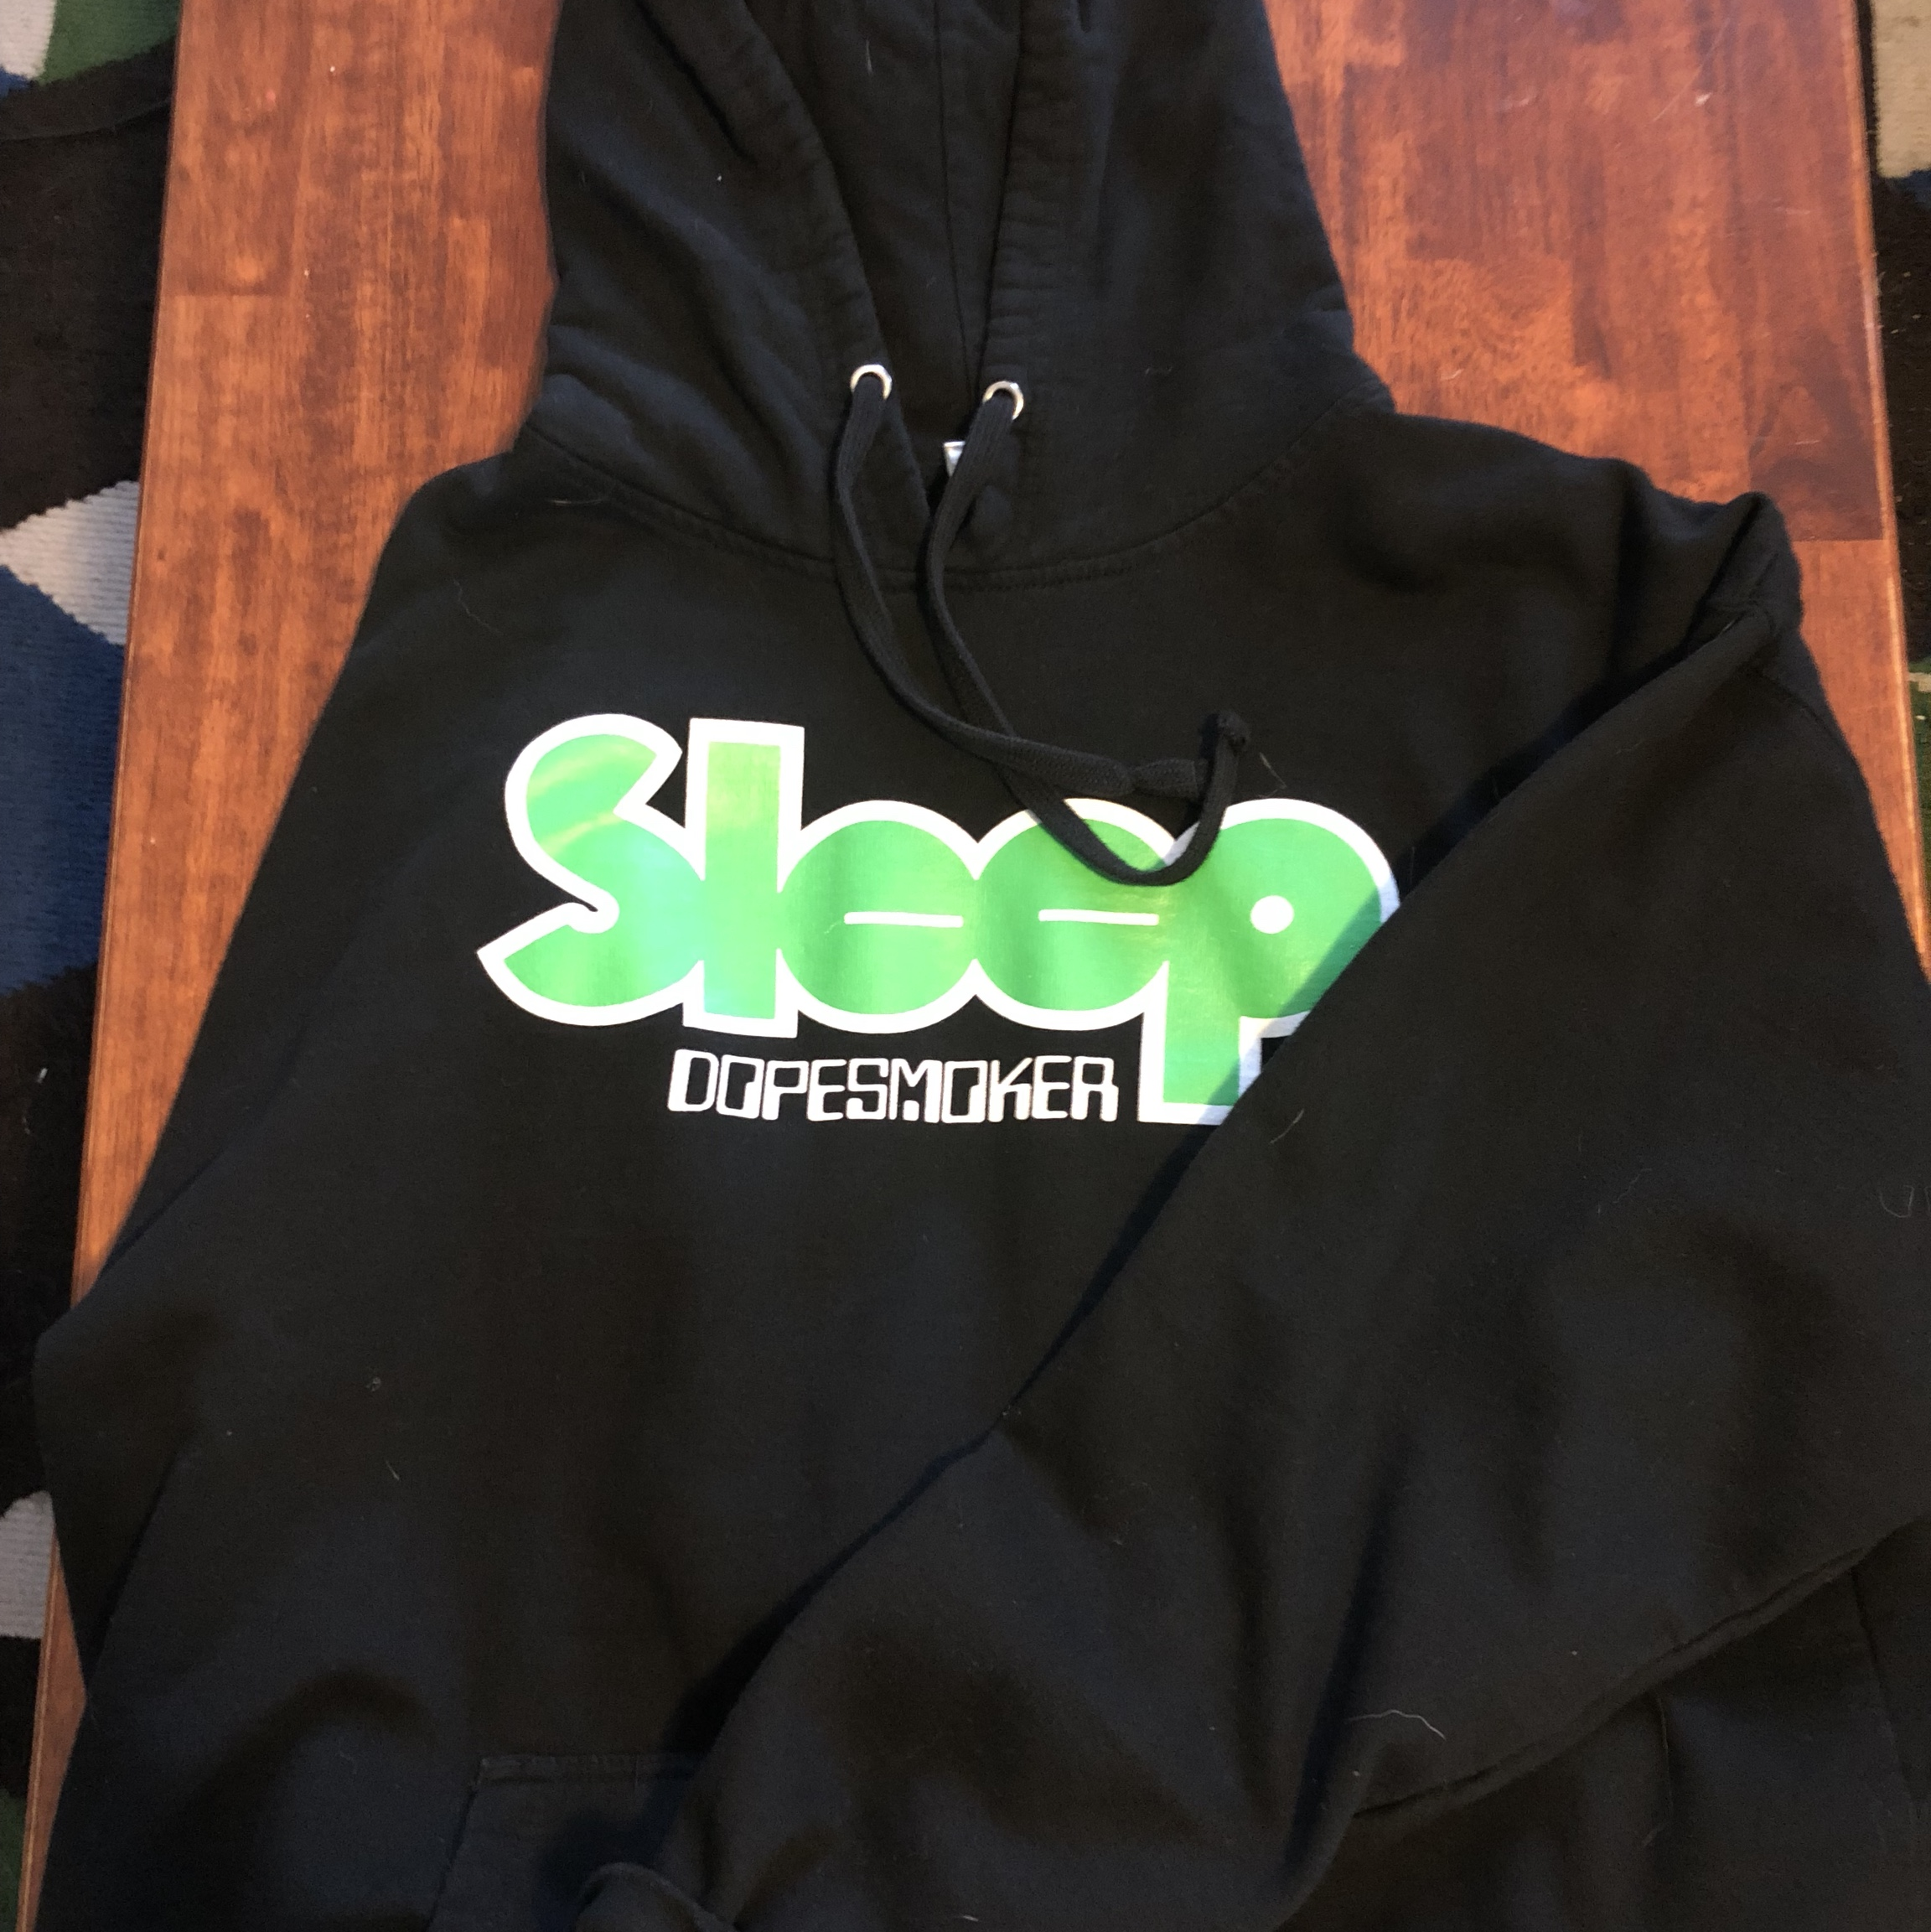 SLEEP DOPESMOKER hoodie XL #sleep #dopesmoker    - Depop